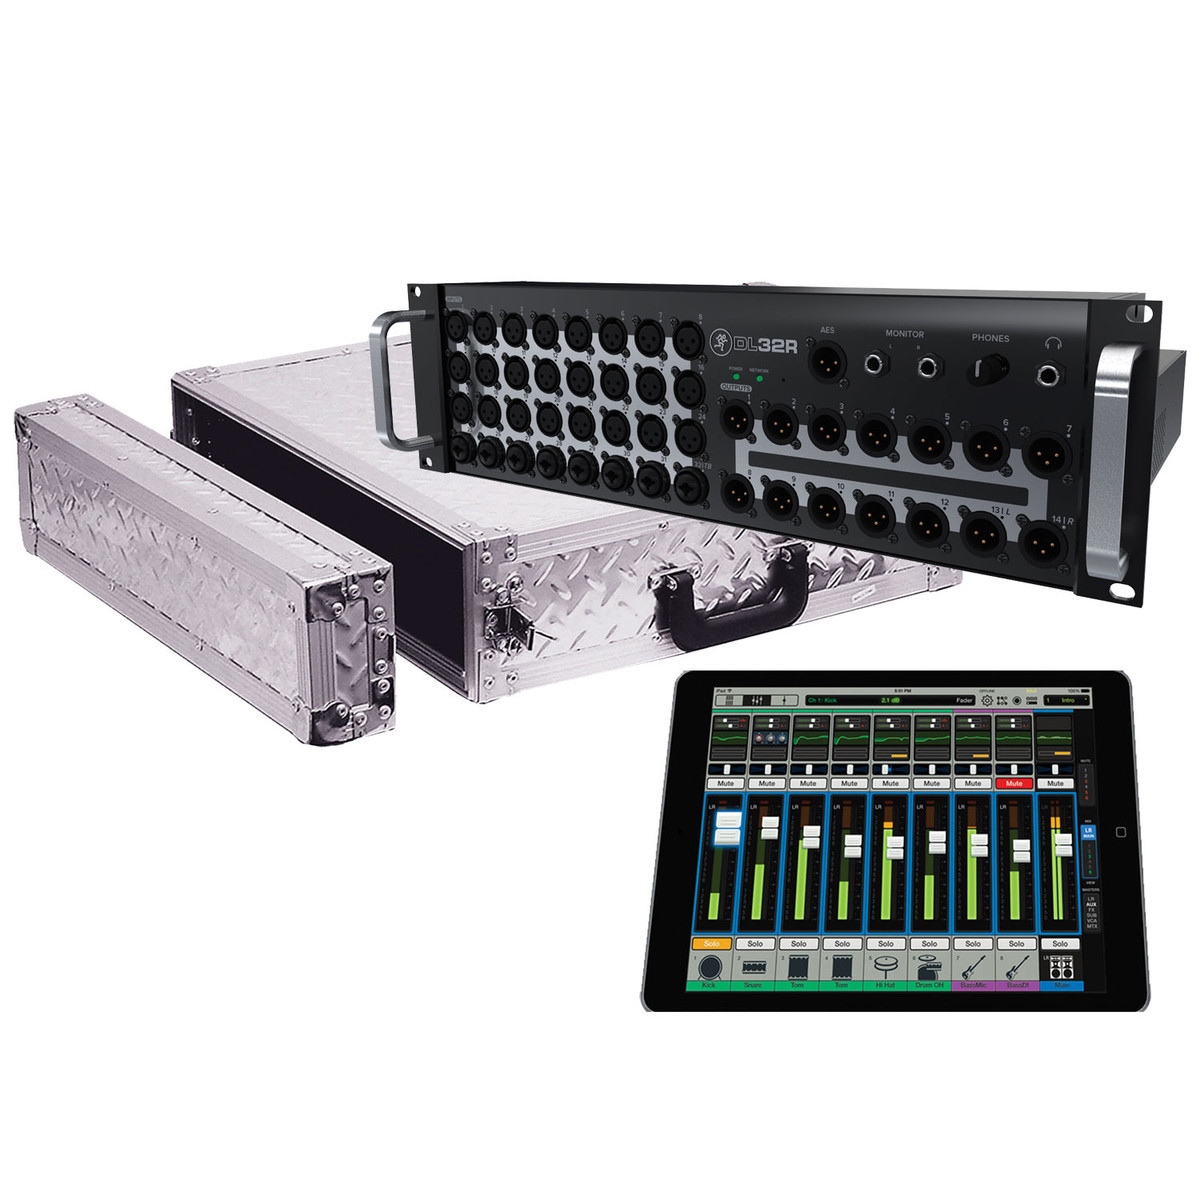 mackie dl32r wireless digital audio mixer with free flight case at gear4music. Black Bedroom Furniture Sets. Home Design Ideas